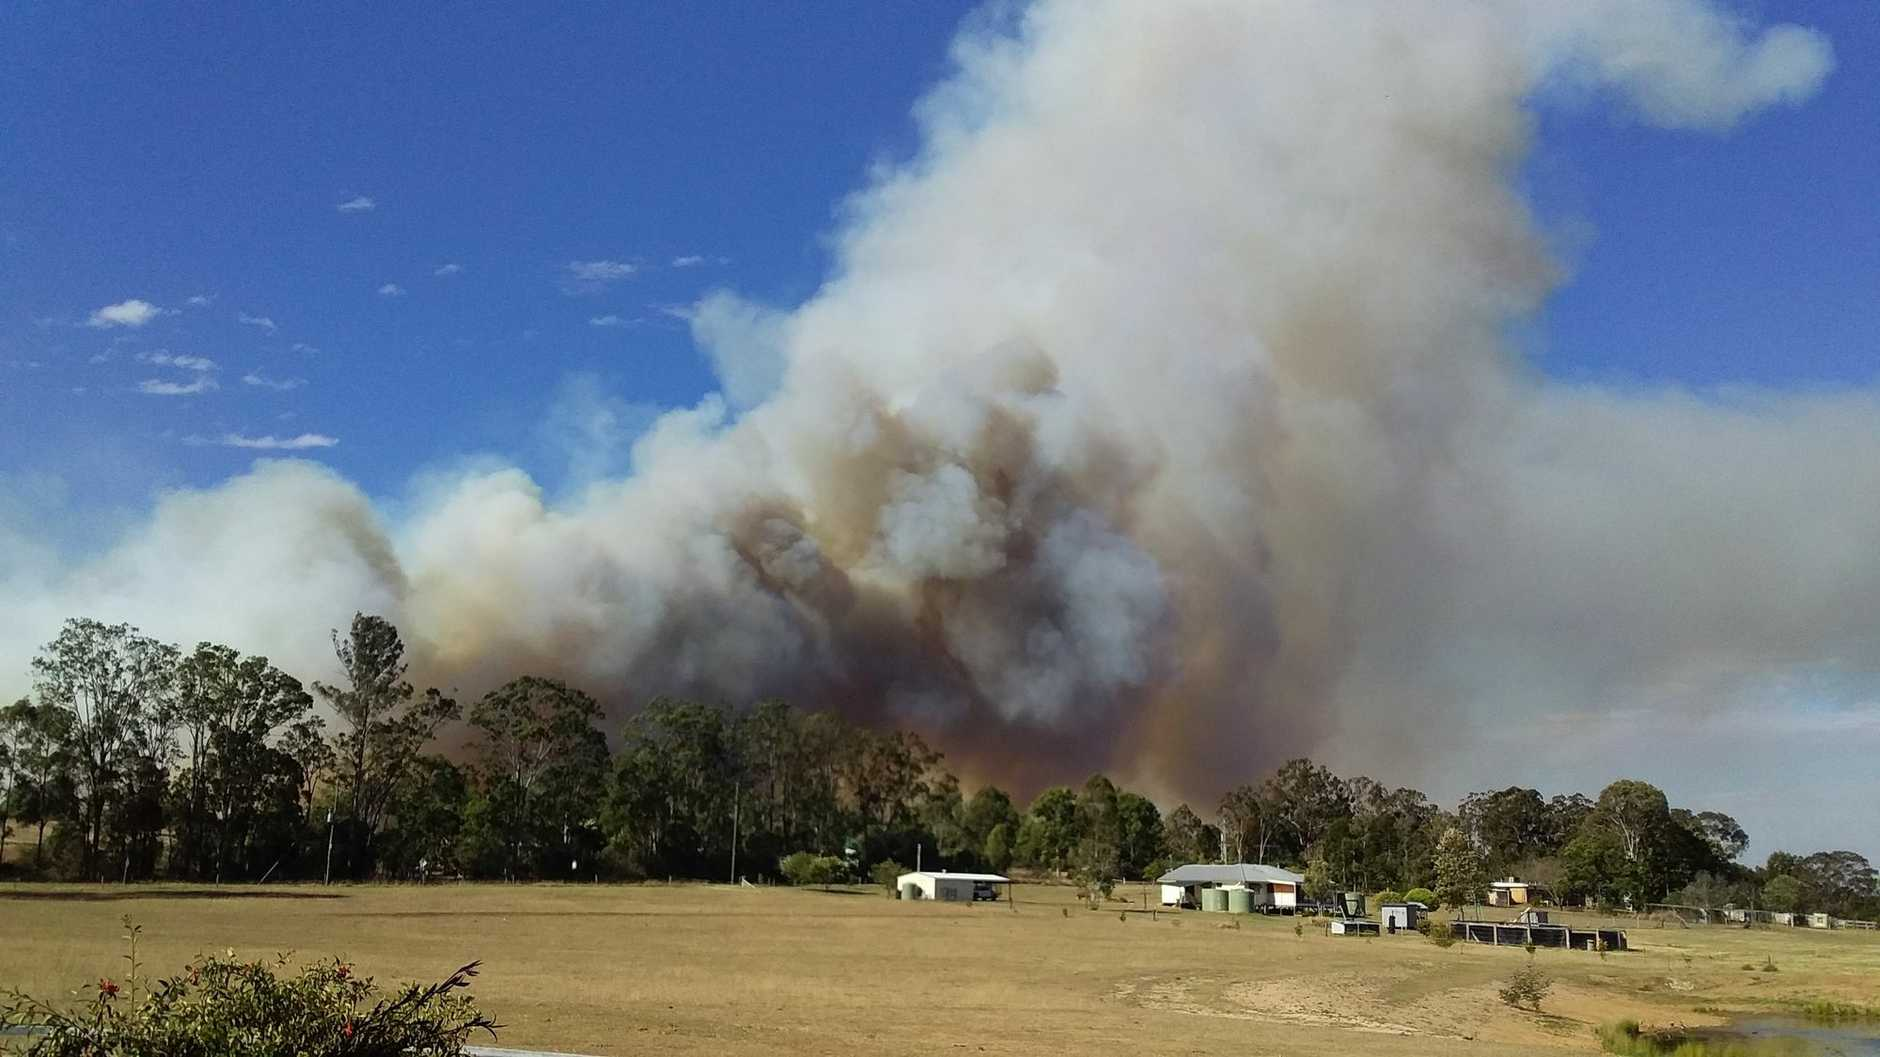 The bush fire was only 500 metres away from the corner of Smith Rd and Kahler Rd near Michelle Binstead's place, as the fire travelled through Booie and Glan Devon oon Thursday September 20.